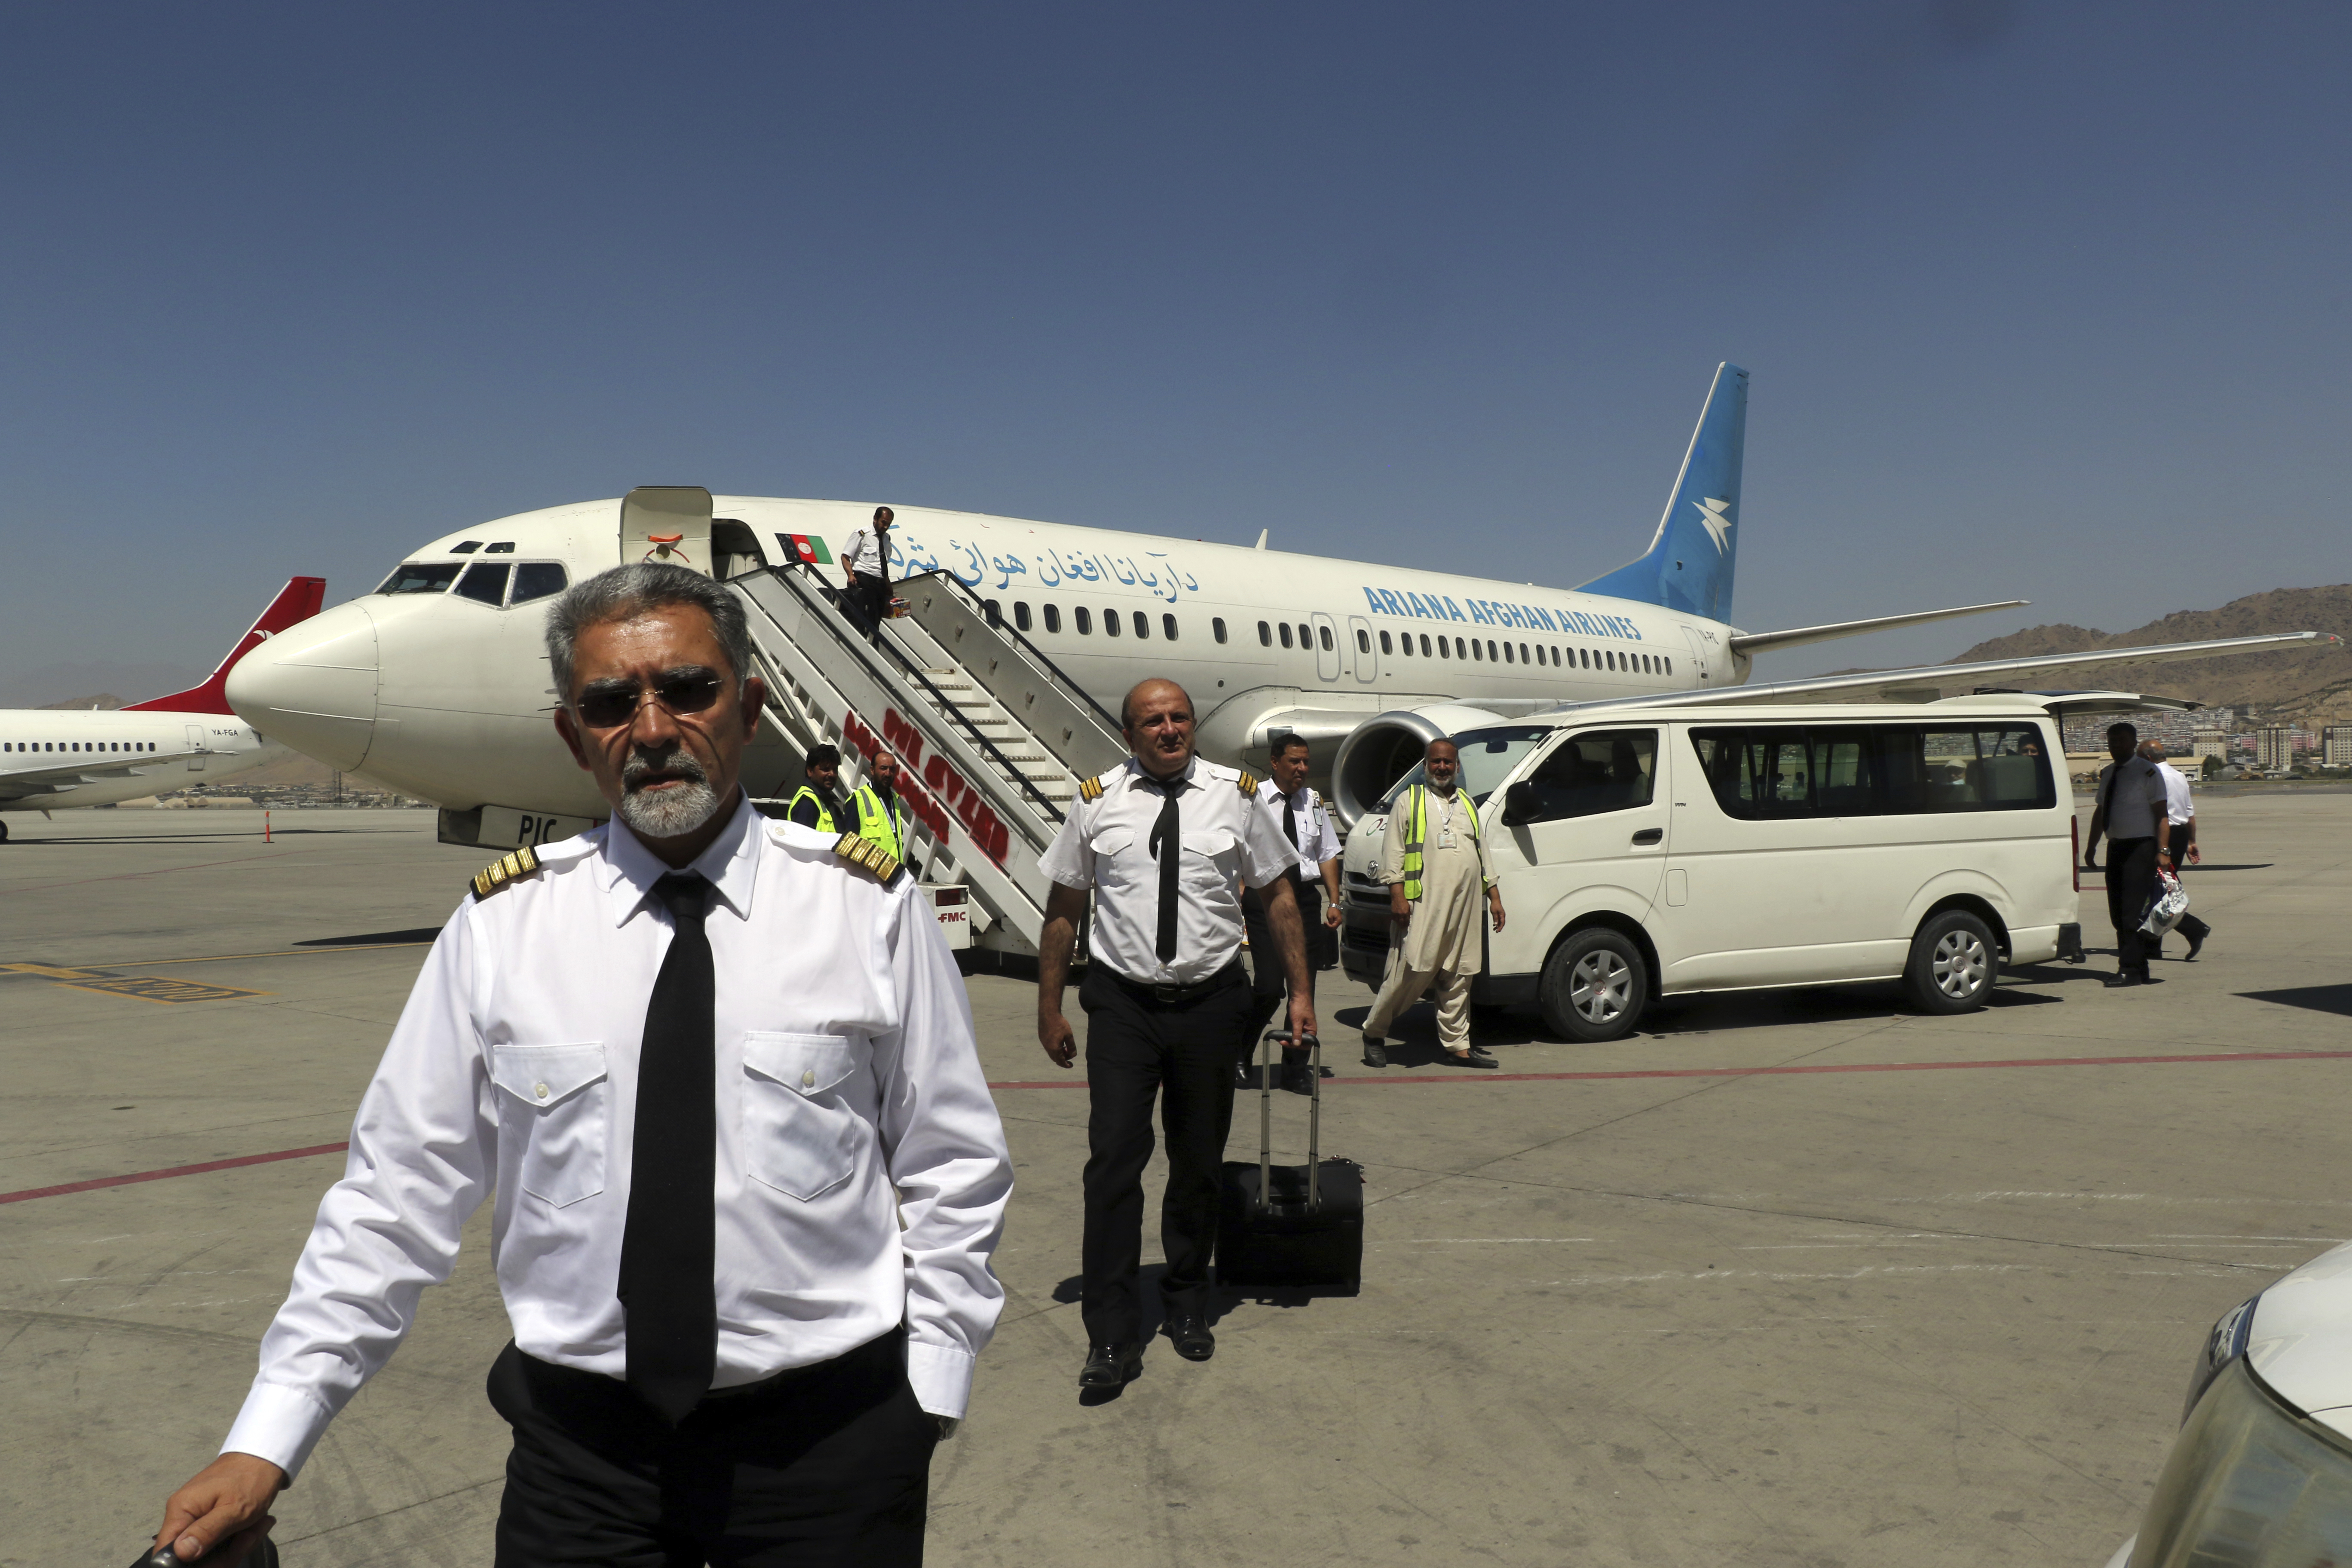 Pilots of Ariana Afghan Airlines walk on the tarmac after landing at Hamid Karzai International Airport in Kabul, Afghanistan, Sunday, Sept. 5, 2021.